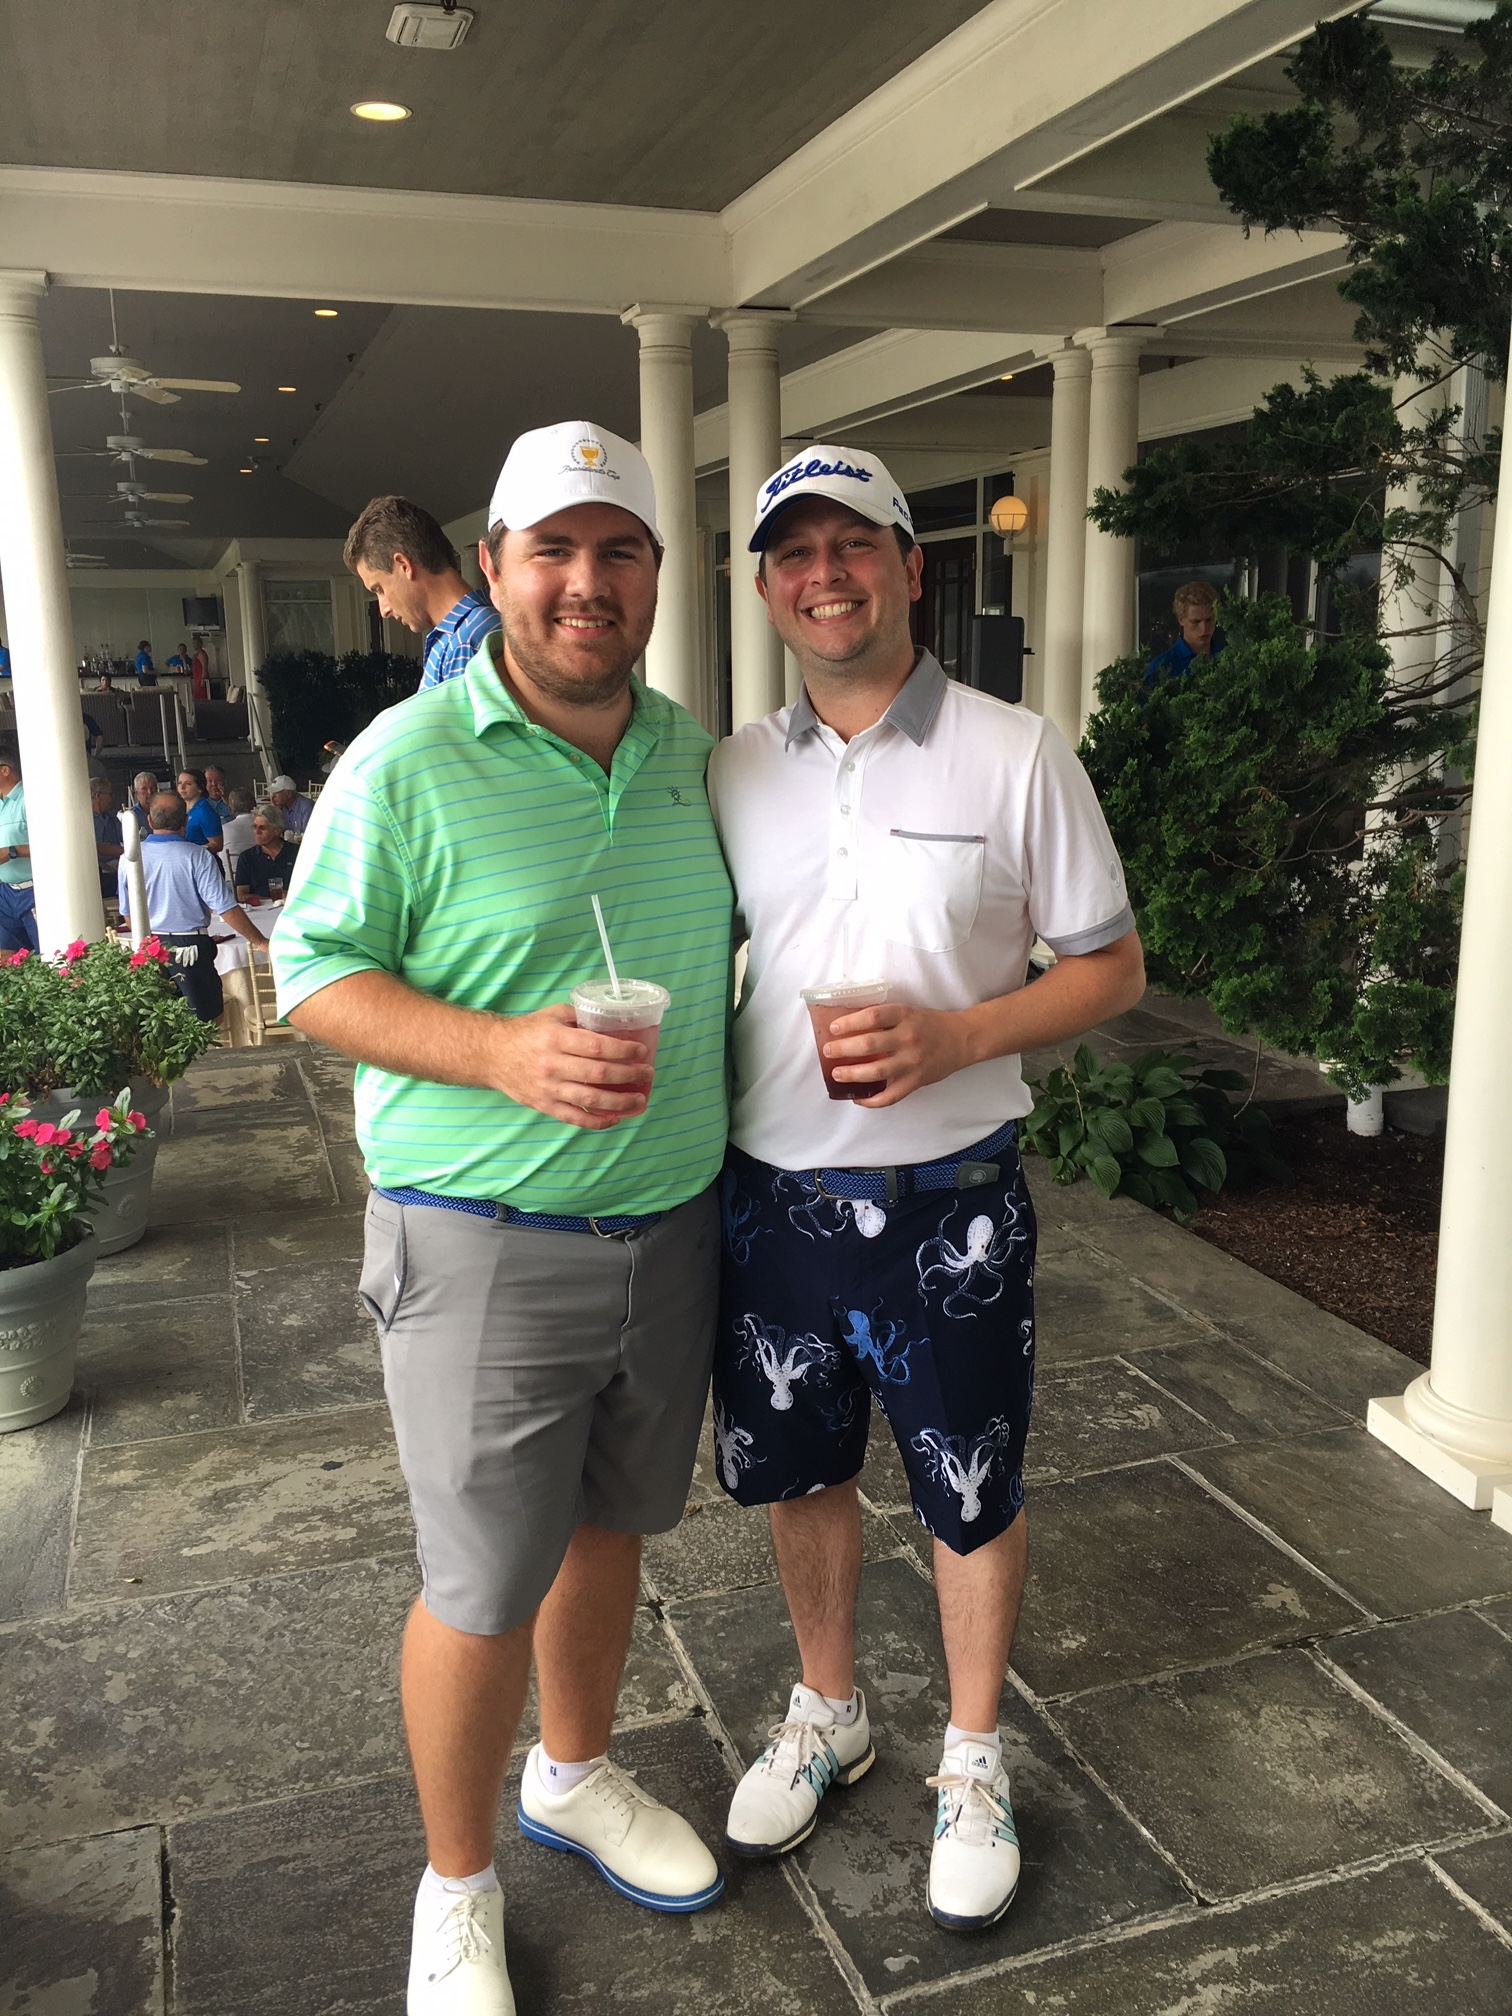 willowbend - Ben Bryant (Brookline, MA) & Brendan Rowe (Boston, MA)Former roommates - Brendan lives in South Boston and played golf for Bryant University. Ben lives in Brookline. Both are members at Willowbend on Cape Cod.